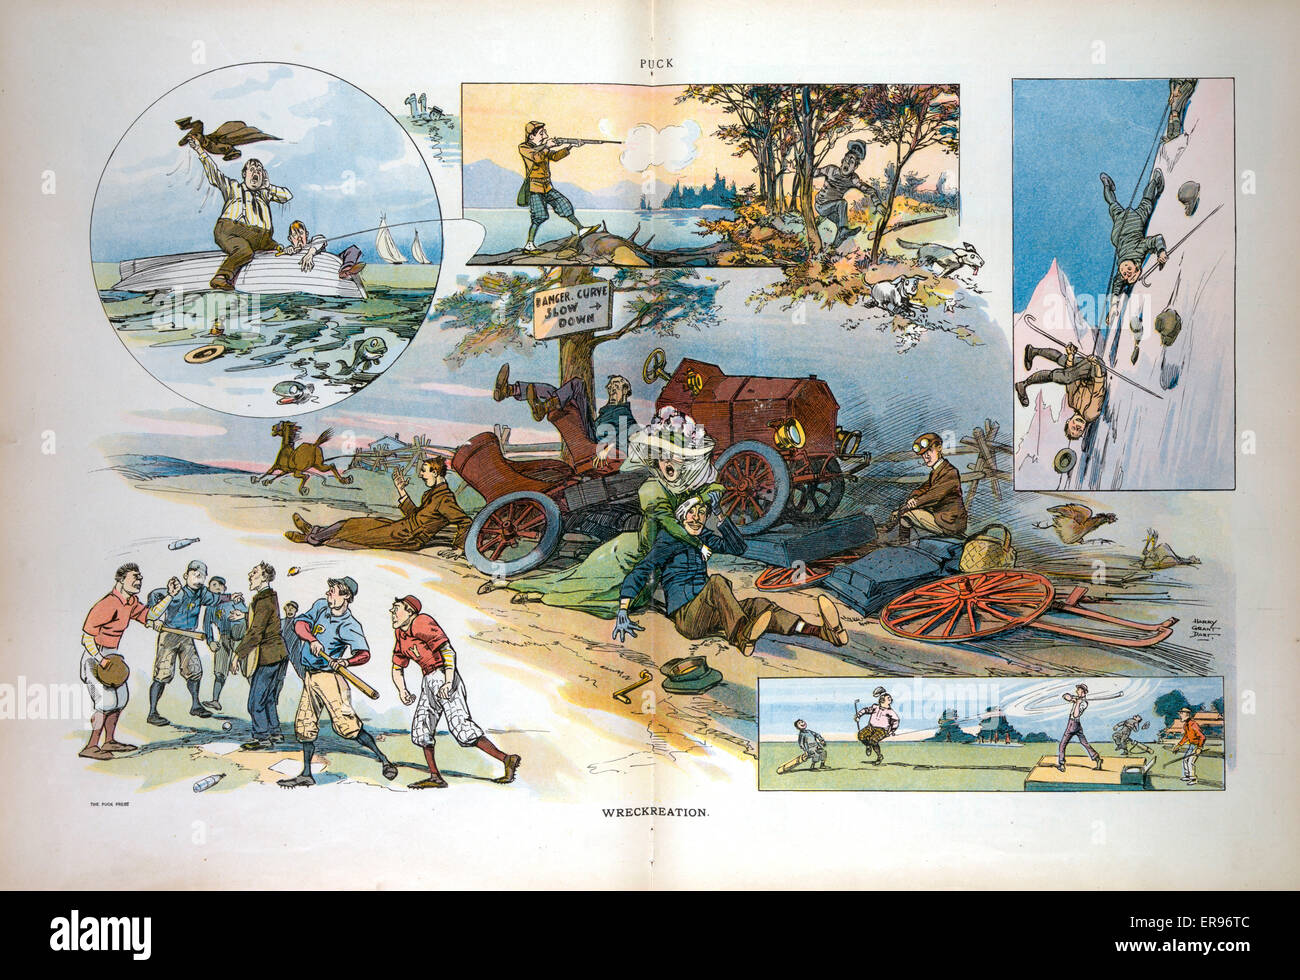 Wreckreation. Illustration shows a vignette cartoon where accidents ...